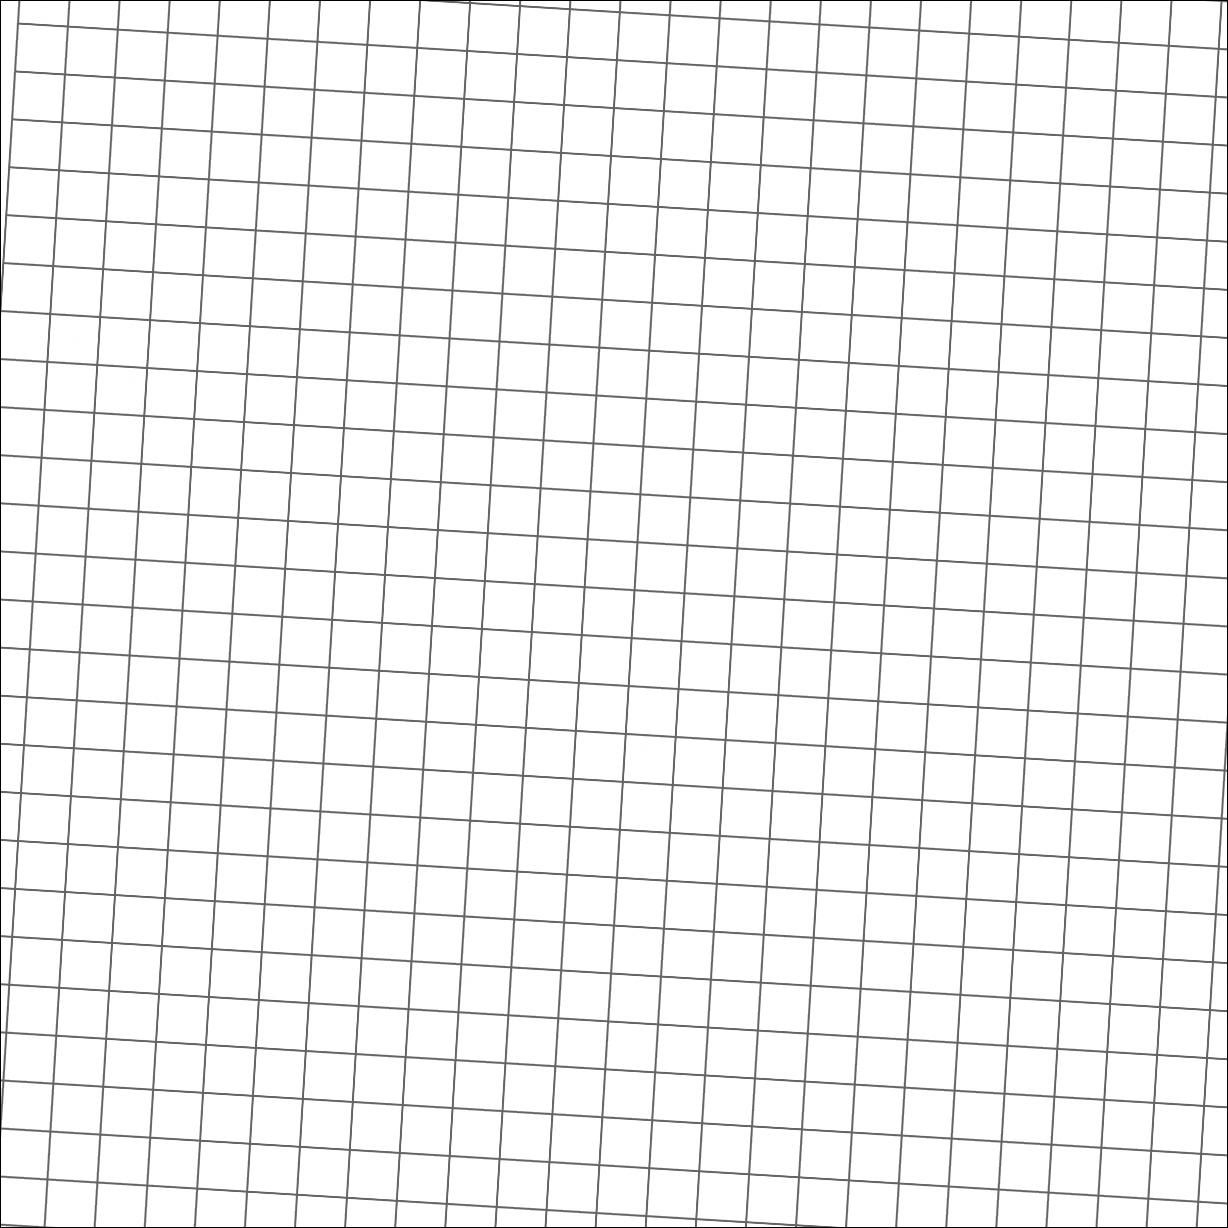 worksheet A Blank Graph free printable graph paper blank standard and metric in various sizes standard